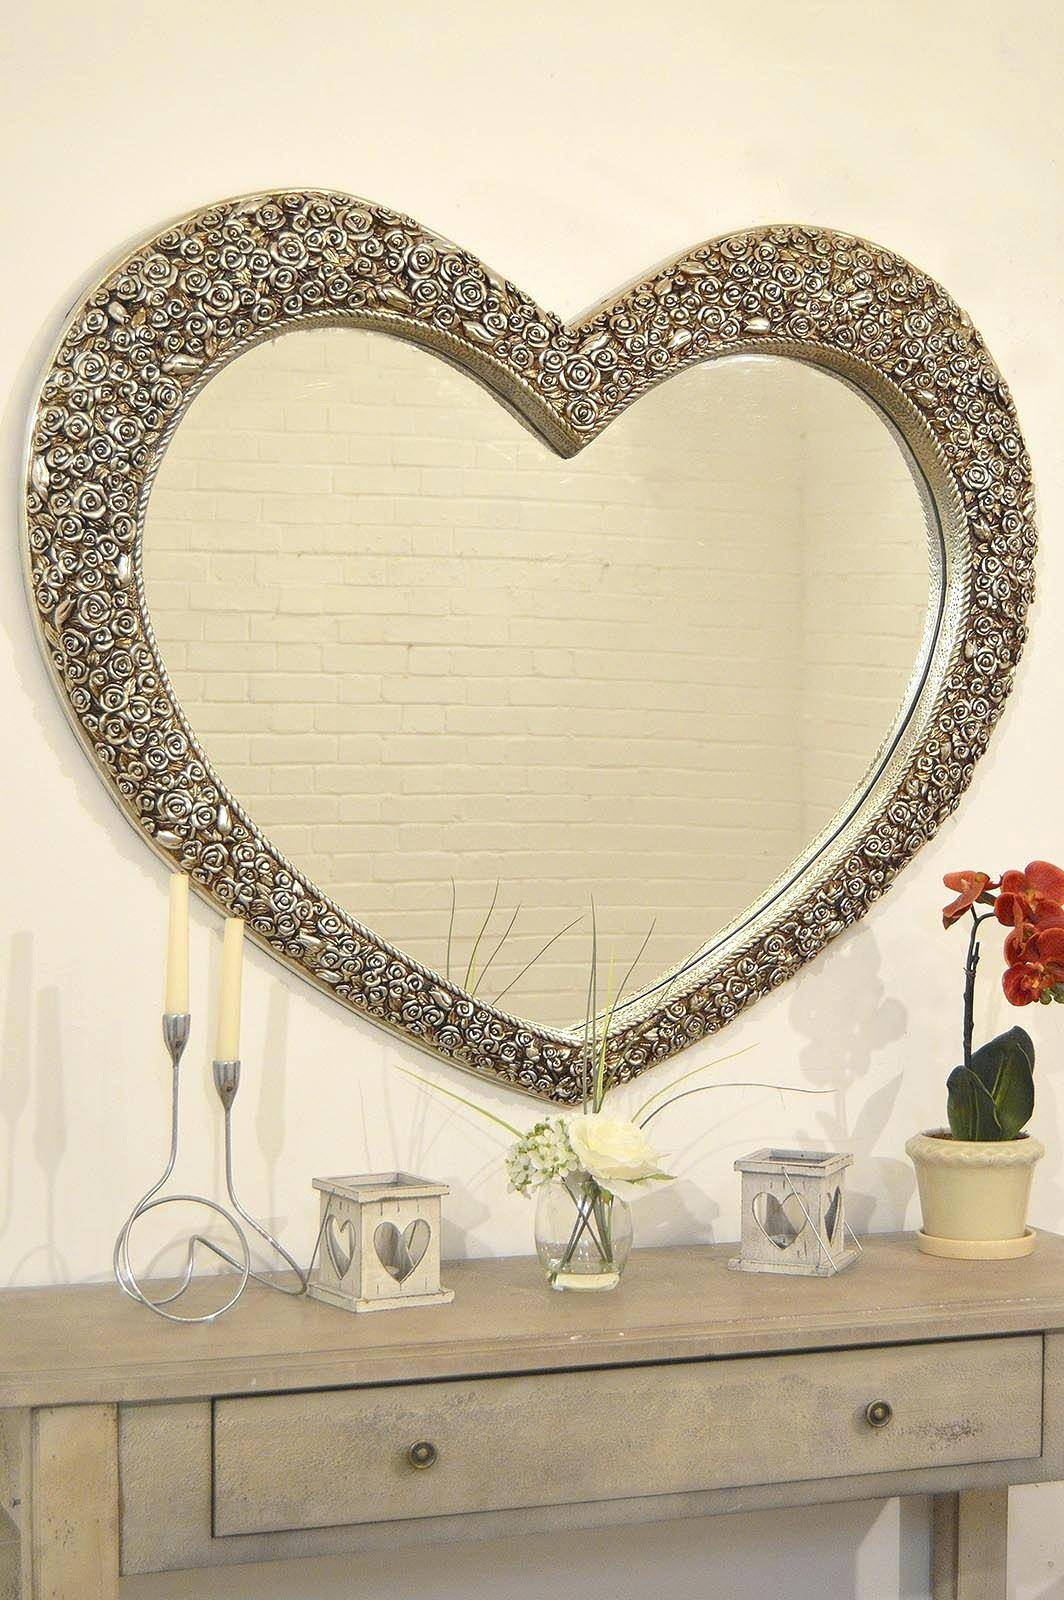 Heart Shaped Angel Wings Wall Mirrorheart Mirrors Uk Venetian intended for Heart Venetian Mirrors (Image 16 of 25)